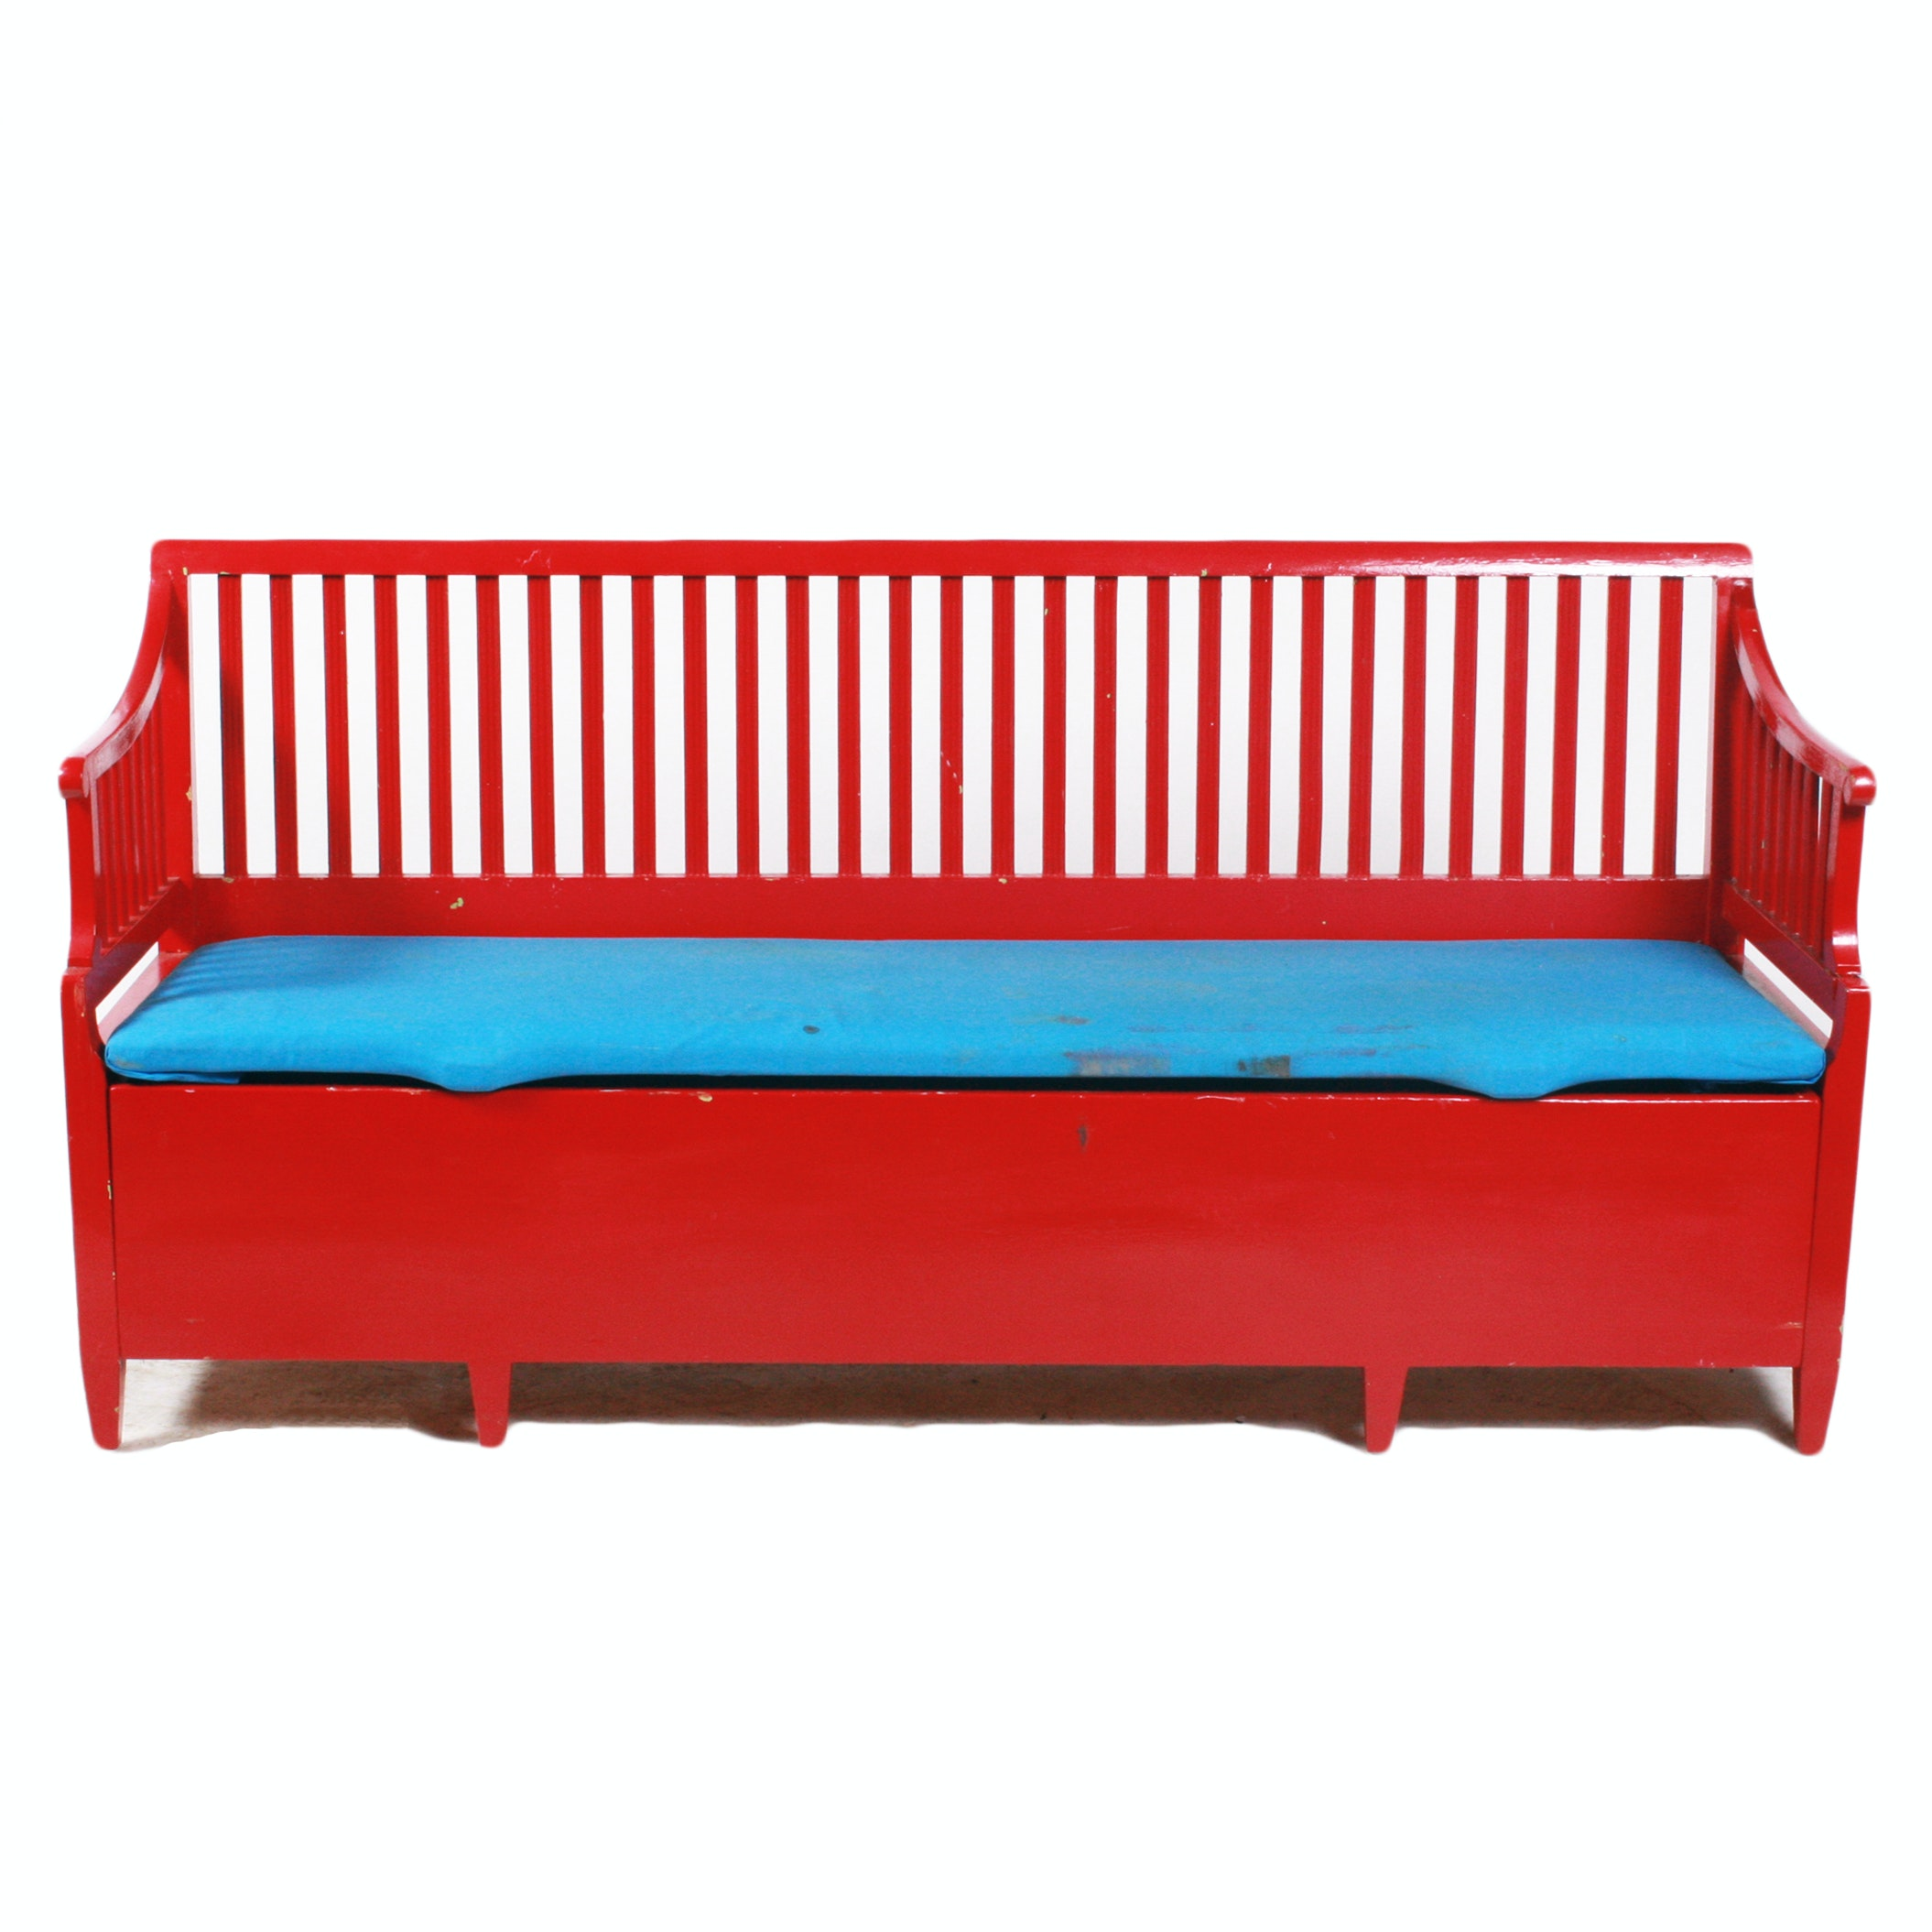 Vintage Red Enamel Painted Knotty Pine Bench